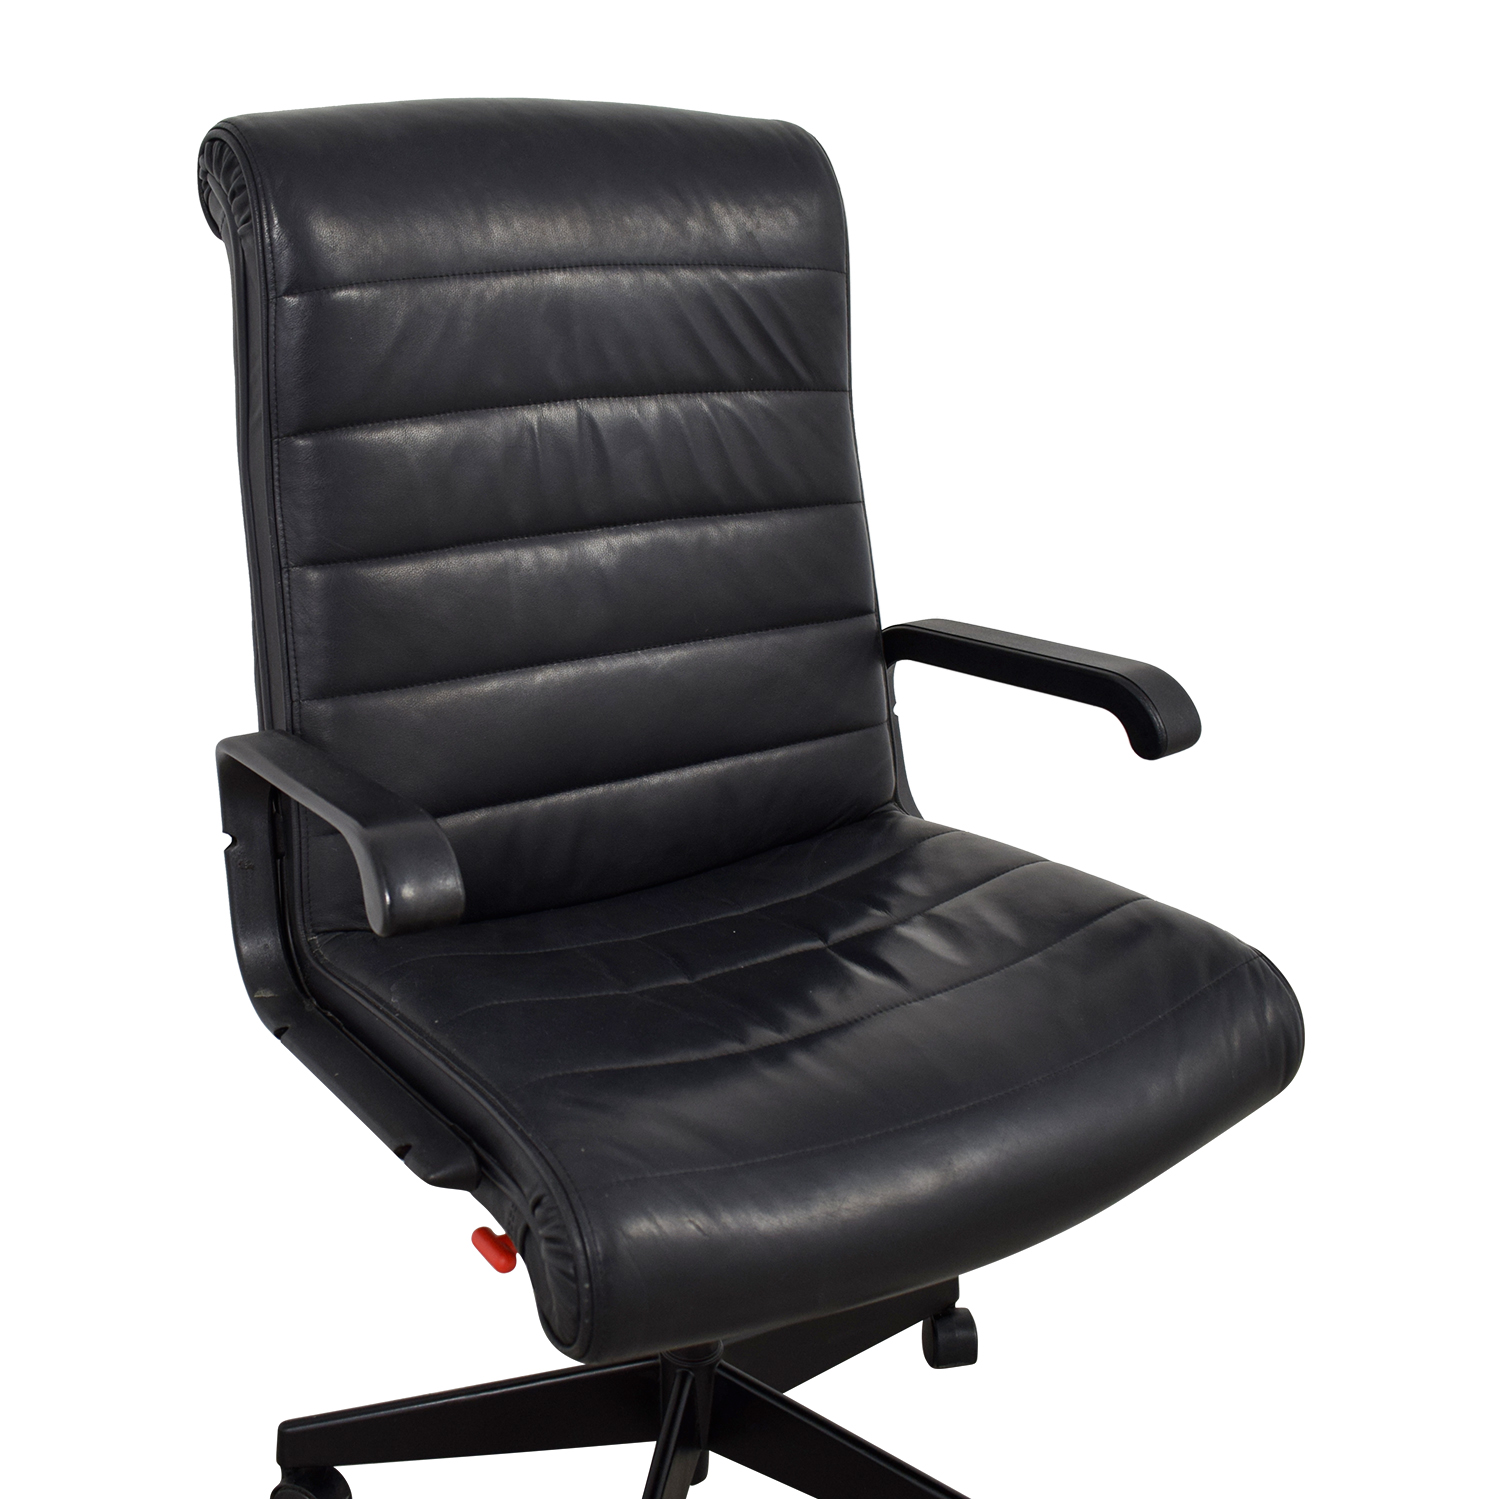 Buy Office Chairs Online 88 Off Black Leather Office Chair Chairs